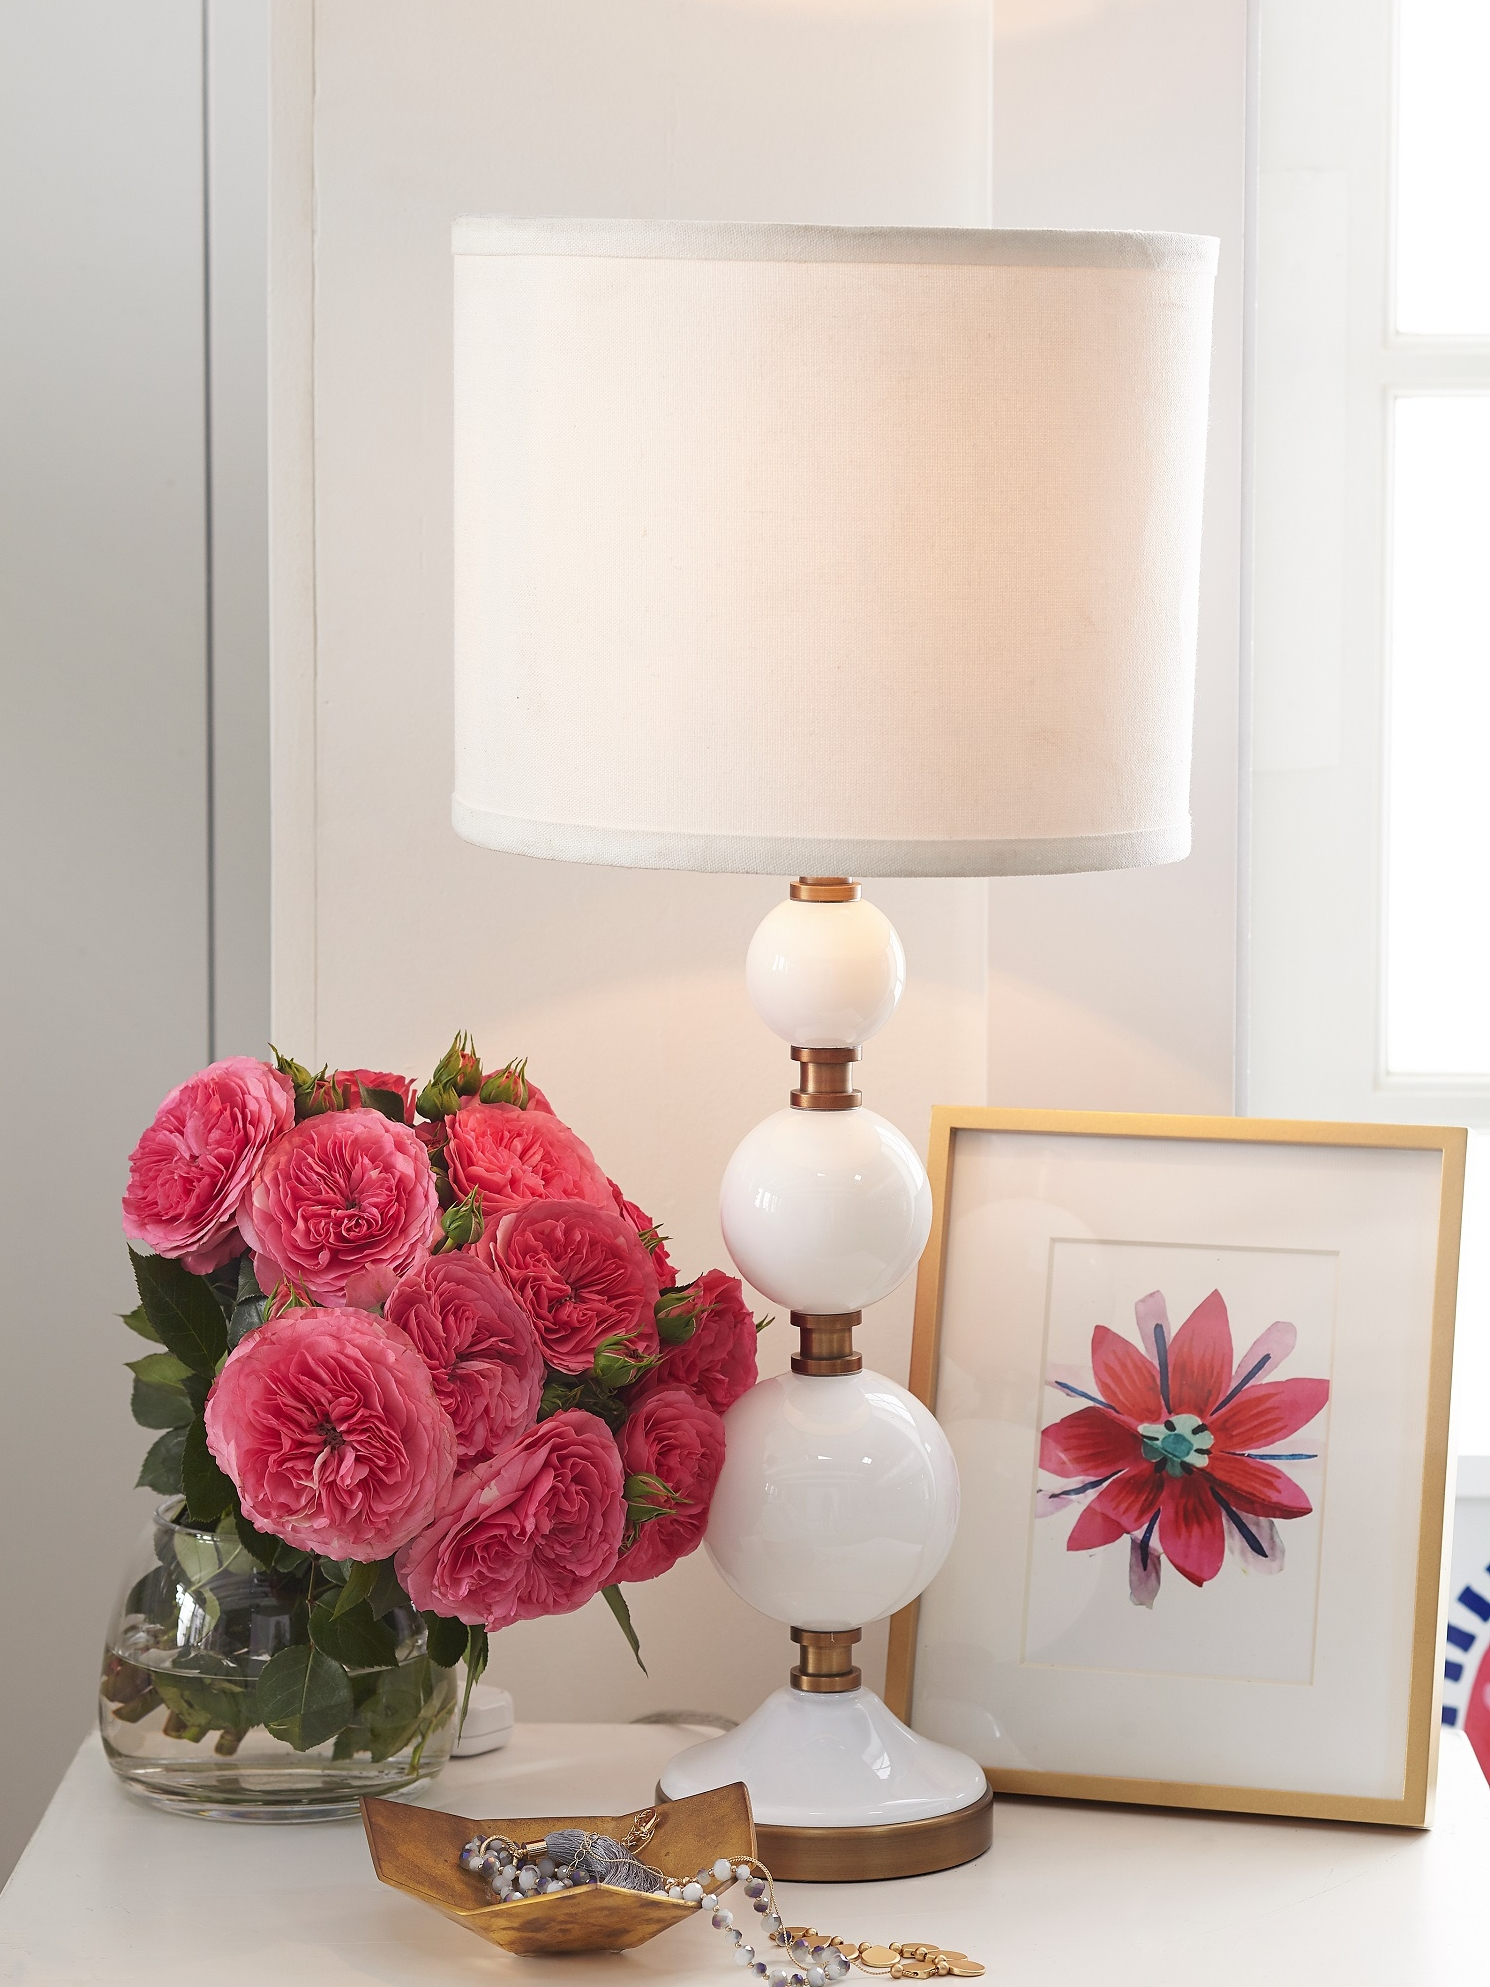 Stacked bubbles make this Tilda Bubble Lamp from Pb Teen, a playful accent on a bedside table or dresser. Featuring hand blown glass and a linen shade, paired with flowers and artwork, it will brighten your space with a relaxing and whimsical glow. Photo courtesy of Pottery Barn.